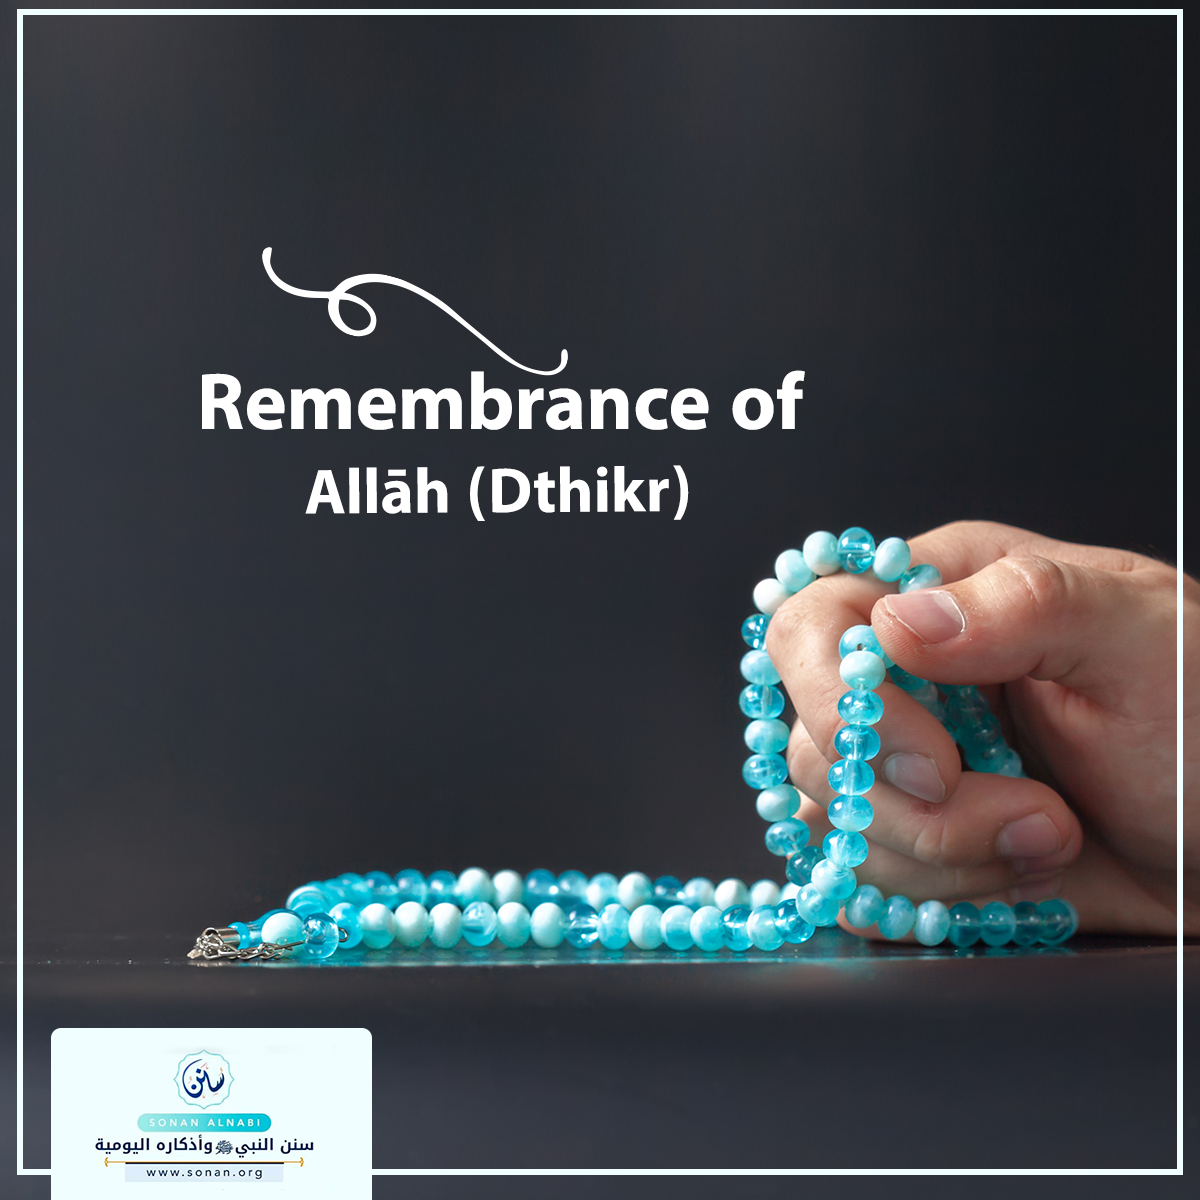 Remembrance of Allāh (Dthikr).